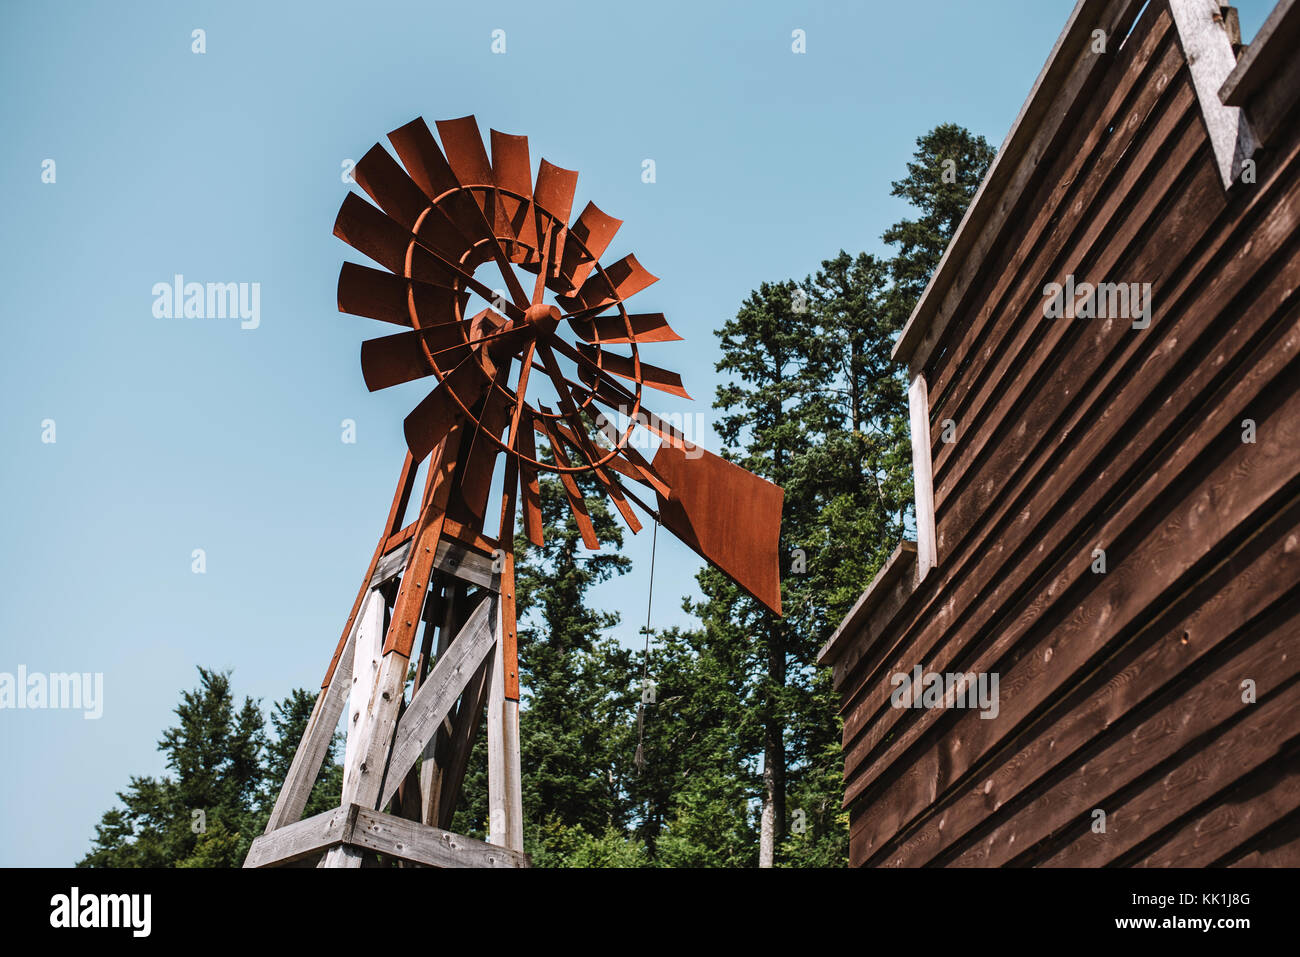 Old rusty windmill with blue sky in background - Stock Image